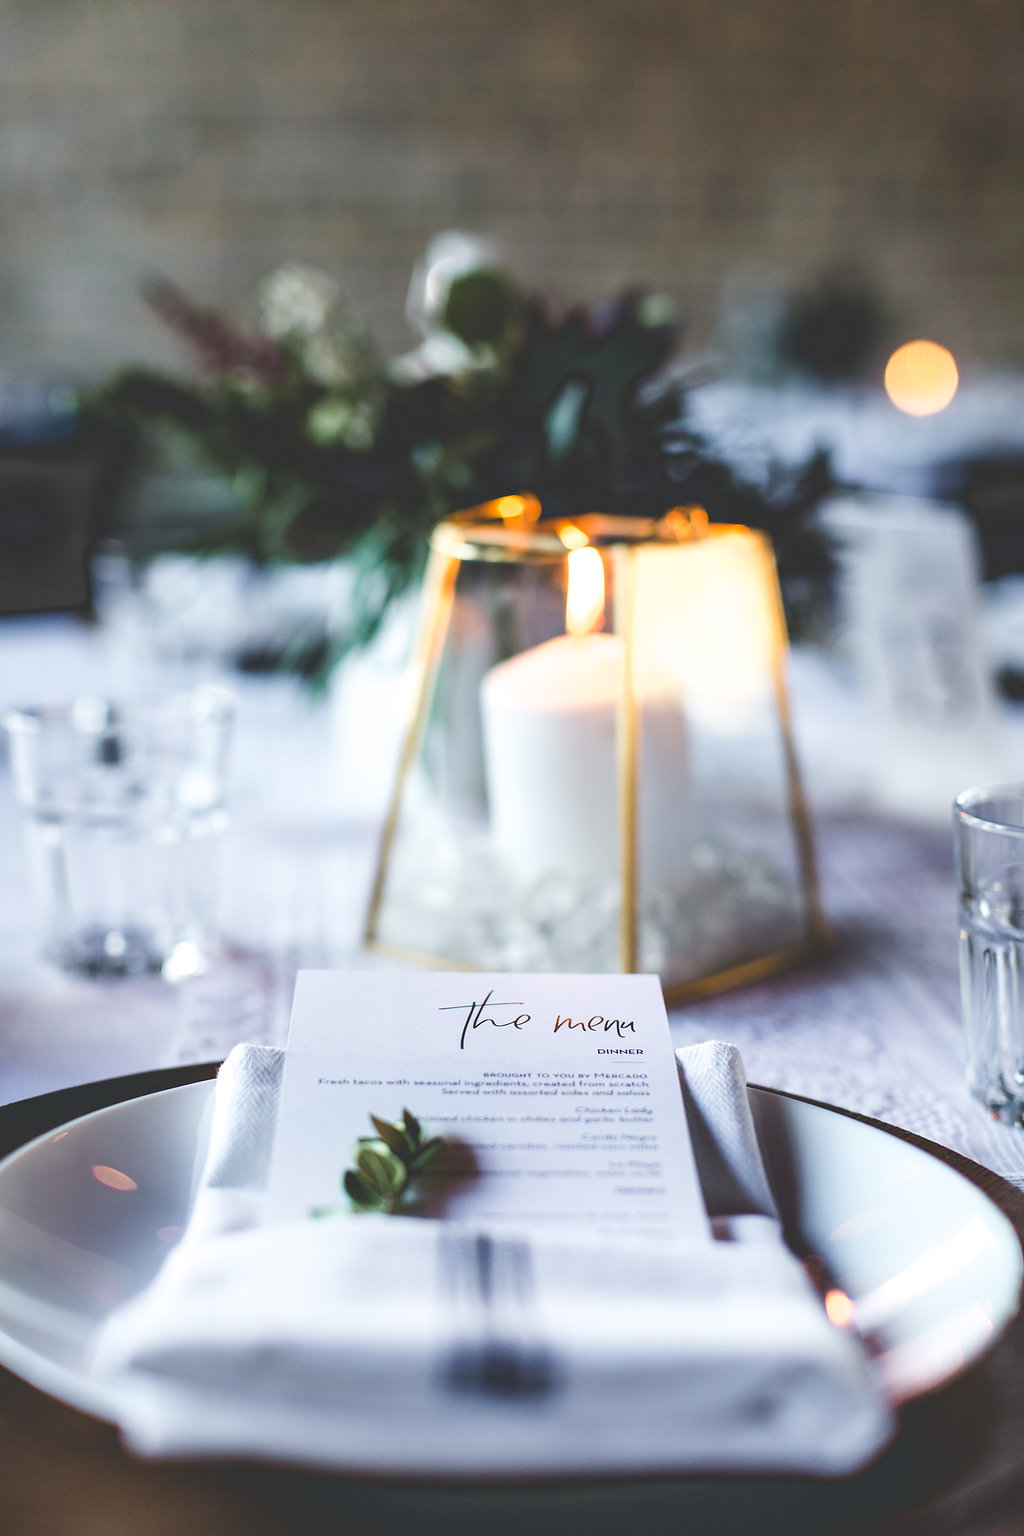 Aaron Rice Photography   Annunciation Ceremony   Day Block Wedding Reception   Sixpence Events and Planning Minnesota Wedding planner   wood charger   rosemary in the napkin   kitchen napkin   menu fold napkin   geometric pillar candle   table deco DIY